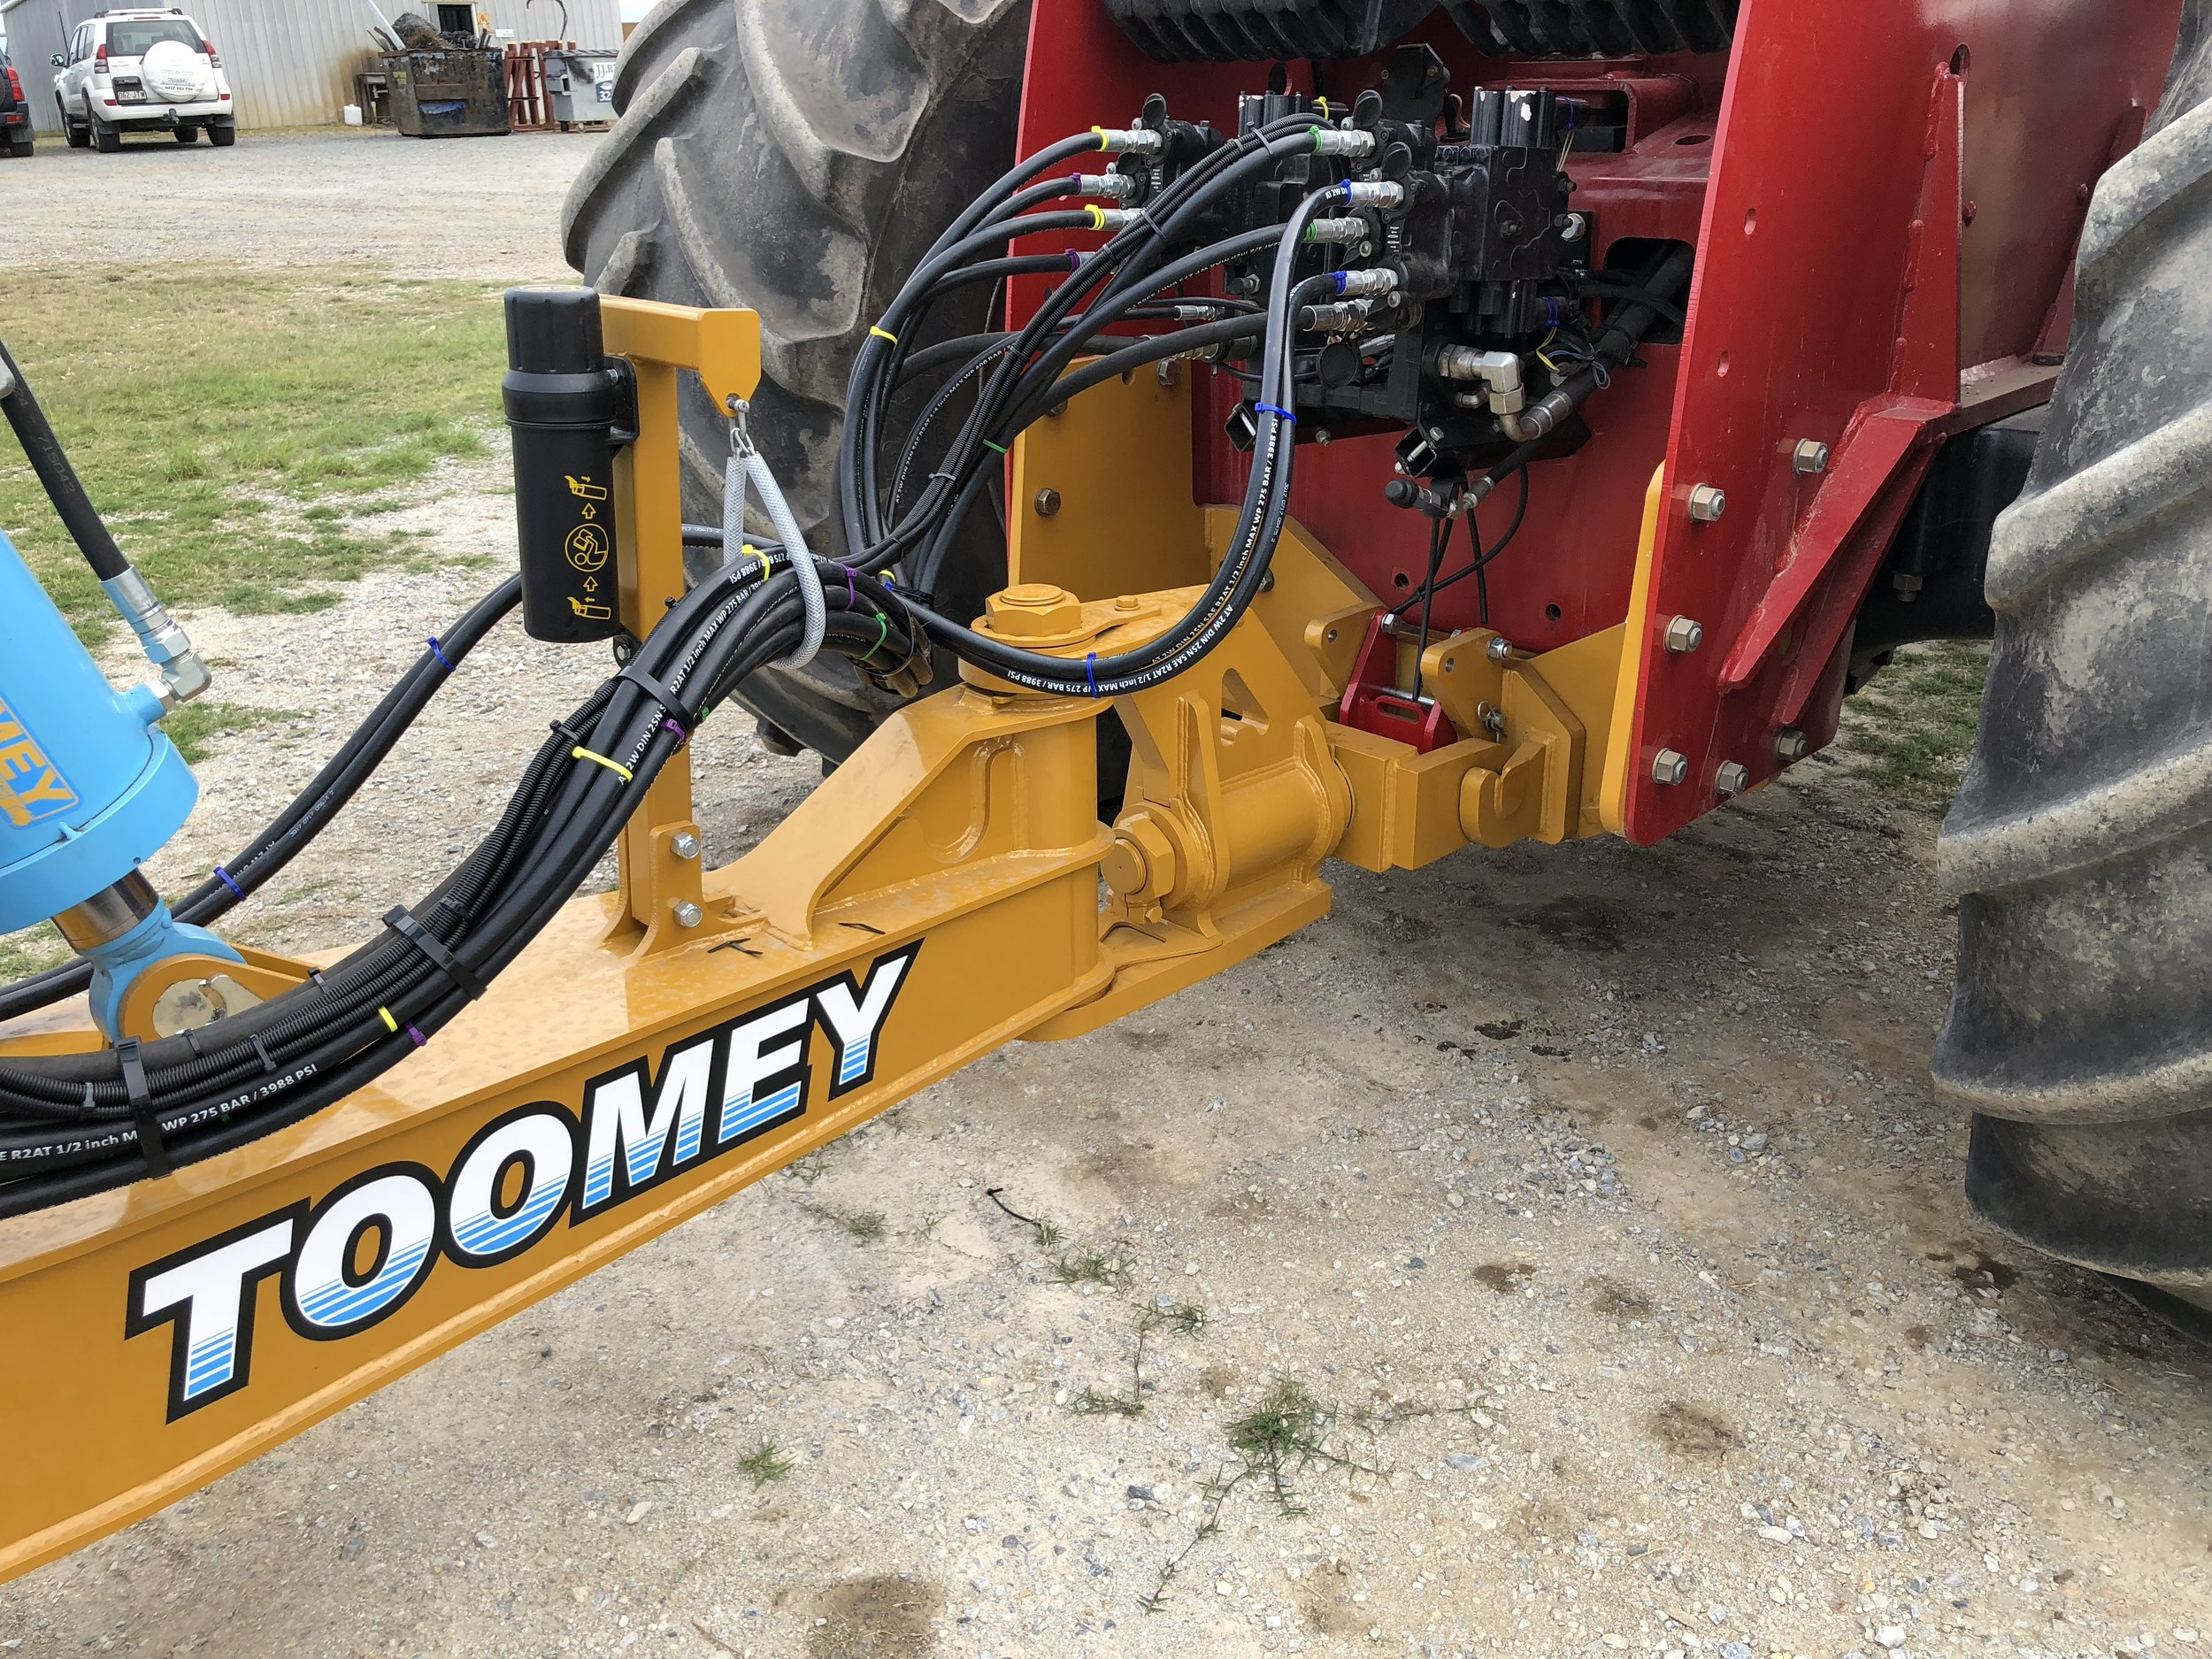 "Swivel Hitch - The Toomey Scrapers are connected to the tractors with a 360 degree rotation Swivel Hitch.This hitch is connected to a quick-disconnect coupling fabricated to the end of a custom made towbar. This coupling is positioned as close to the back axle as possible to reduce the weight transfer to this axle.The closer the coupling is to the back axle, the less weight is taken away from the front axle. The further towards the scraper the connecting point is, the more leverage is applied to the back axle, transferring weight from the front axle to the back axle – the ""fat kid on a see-saw"" scenario!"